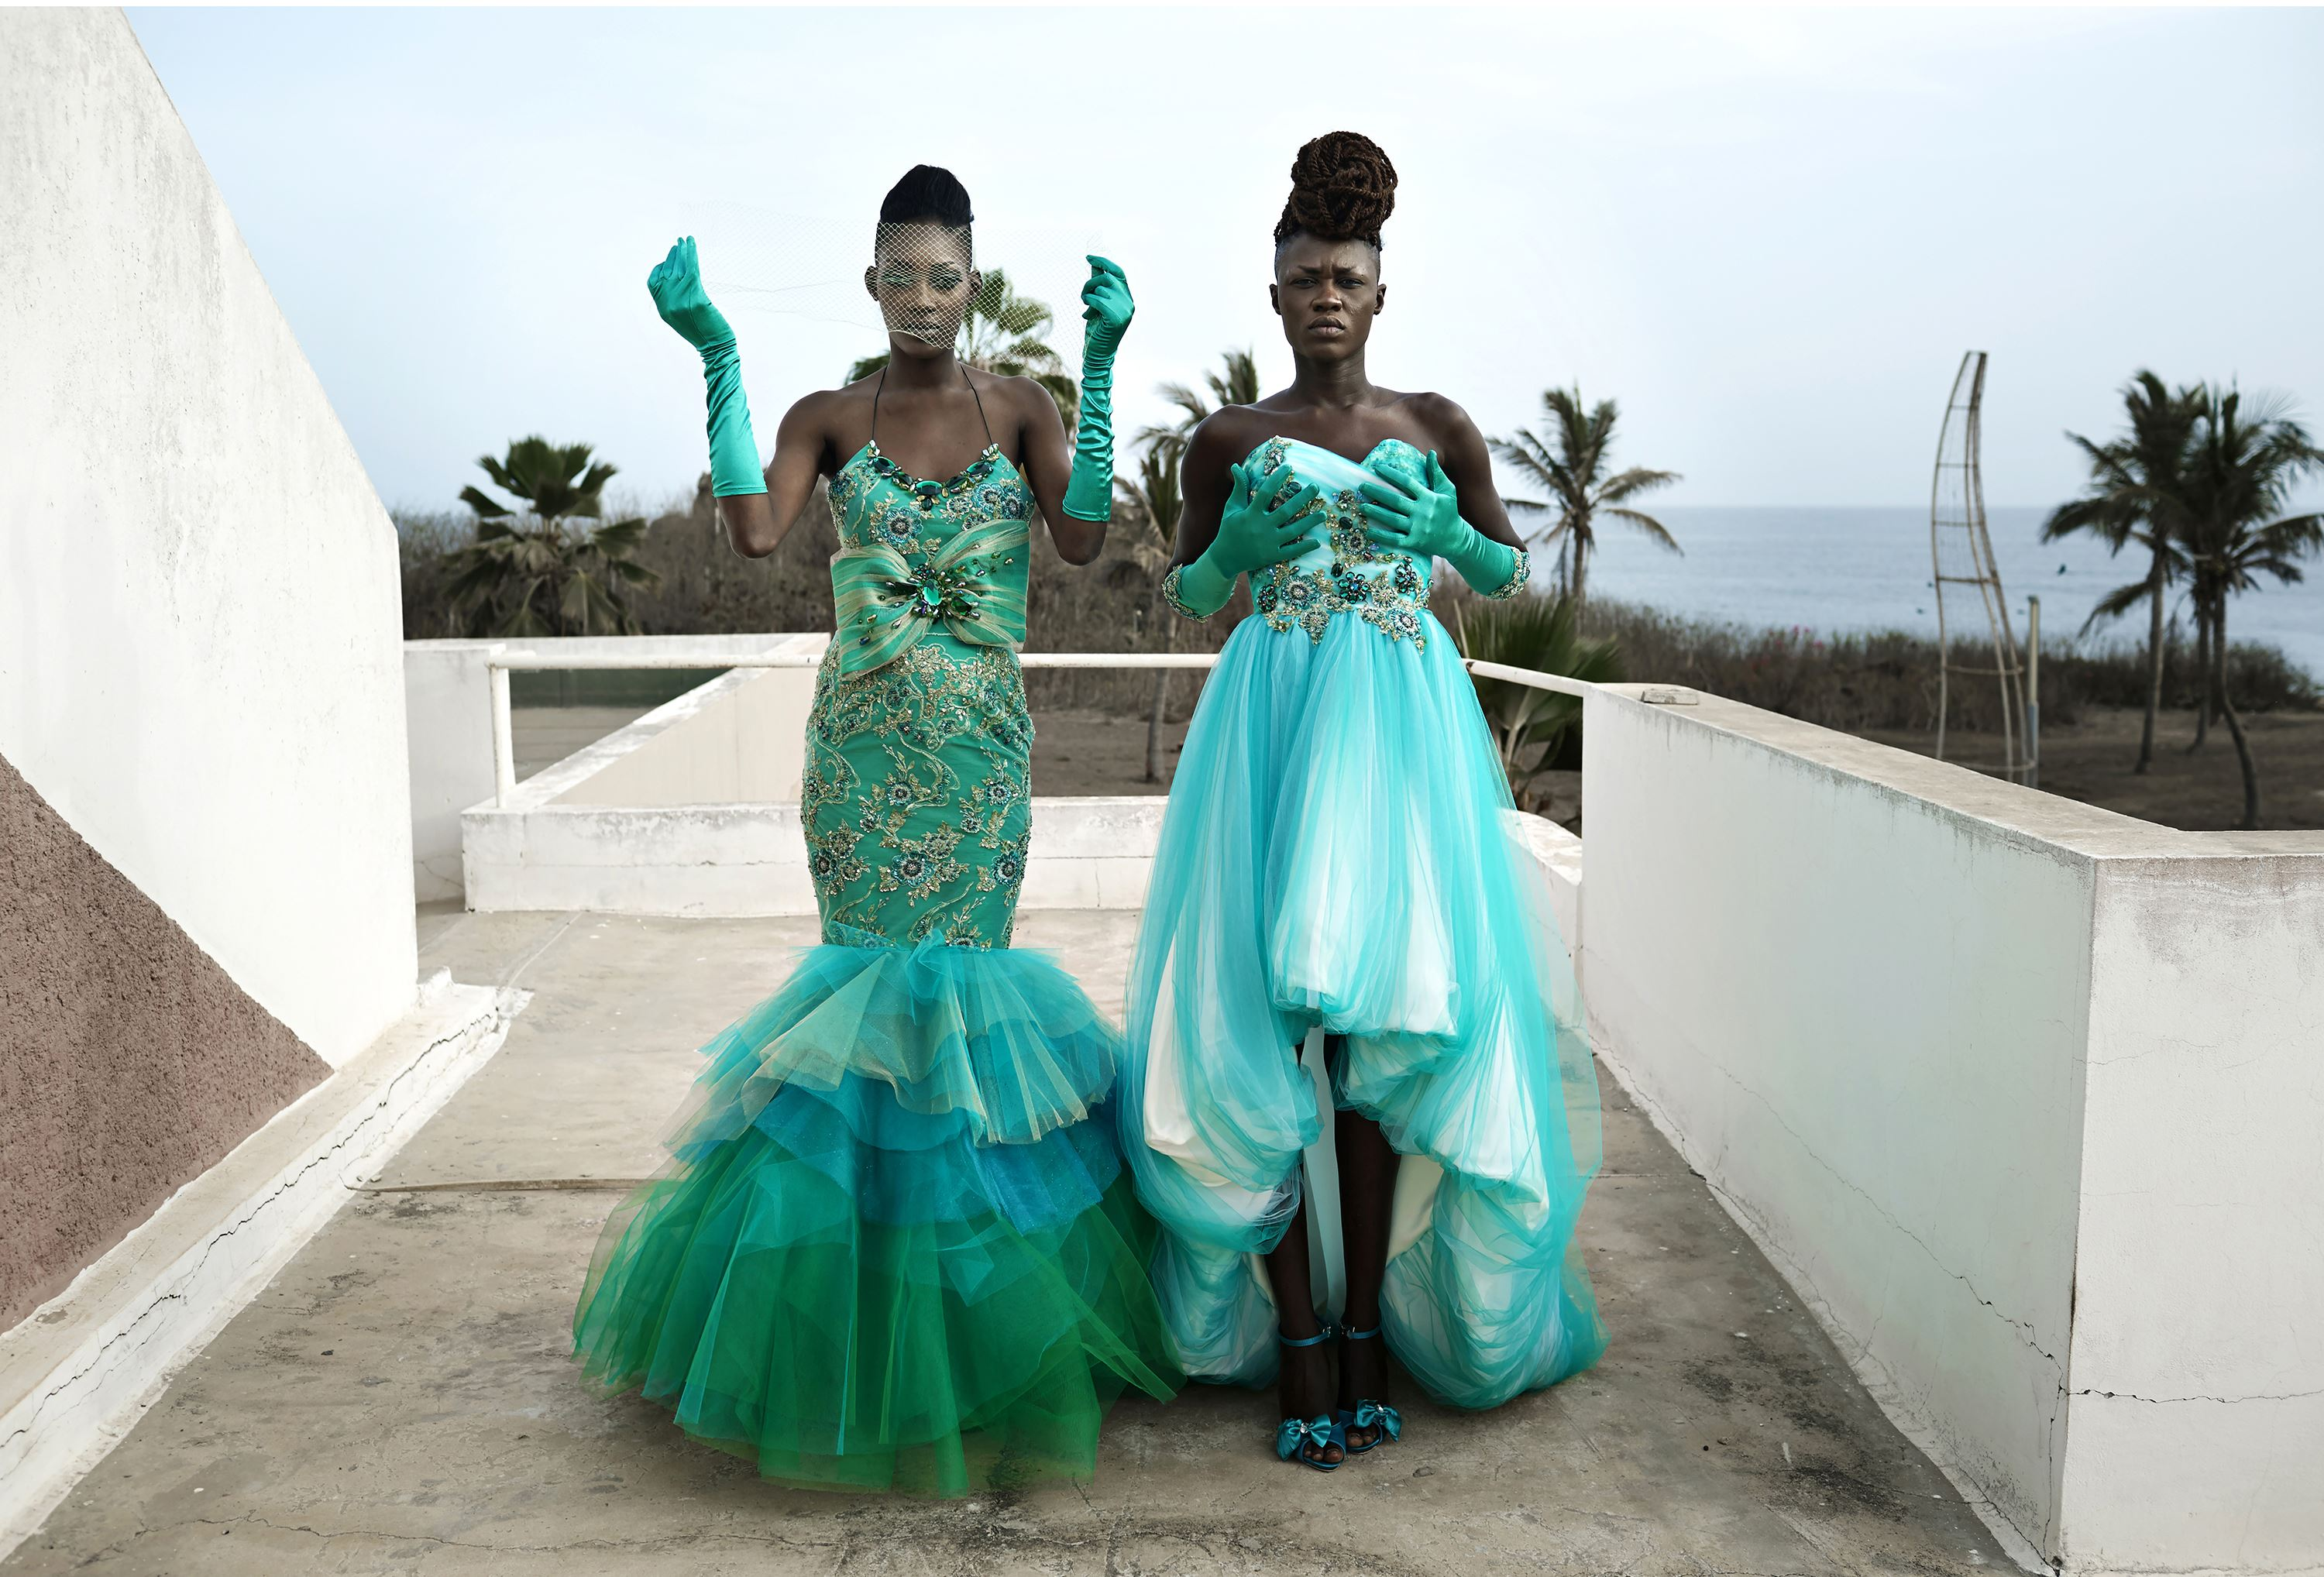 African catwalk // Per-Anders Pettersson